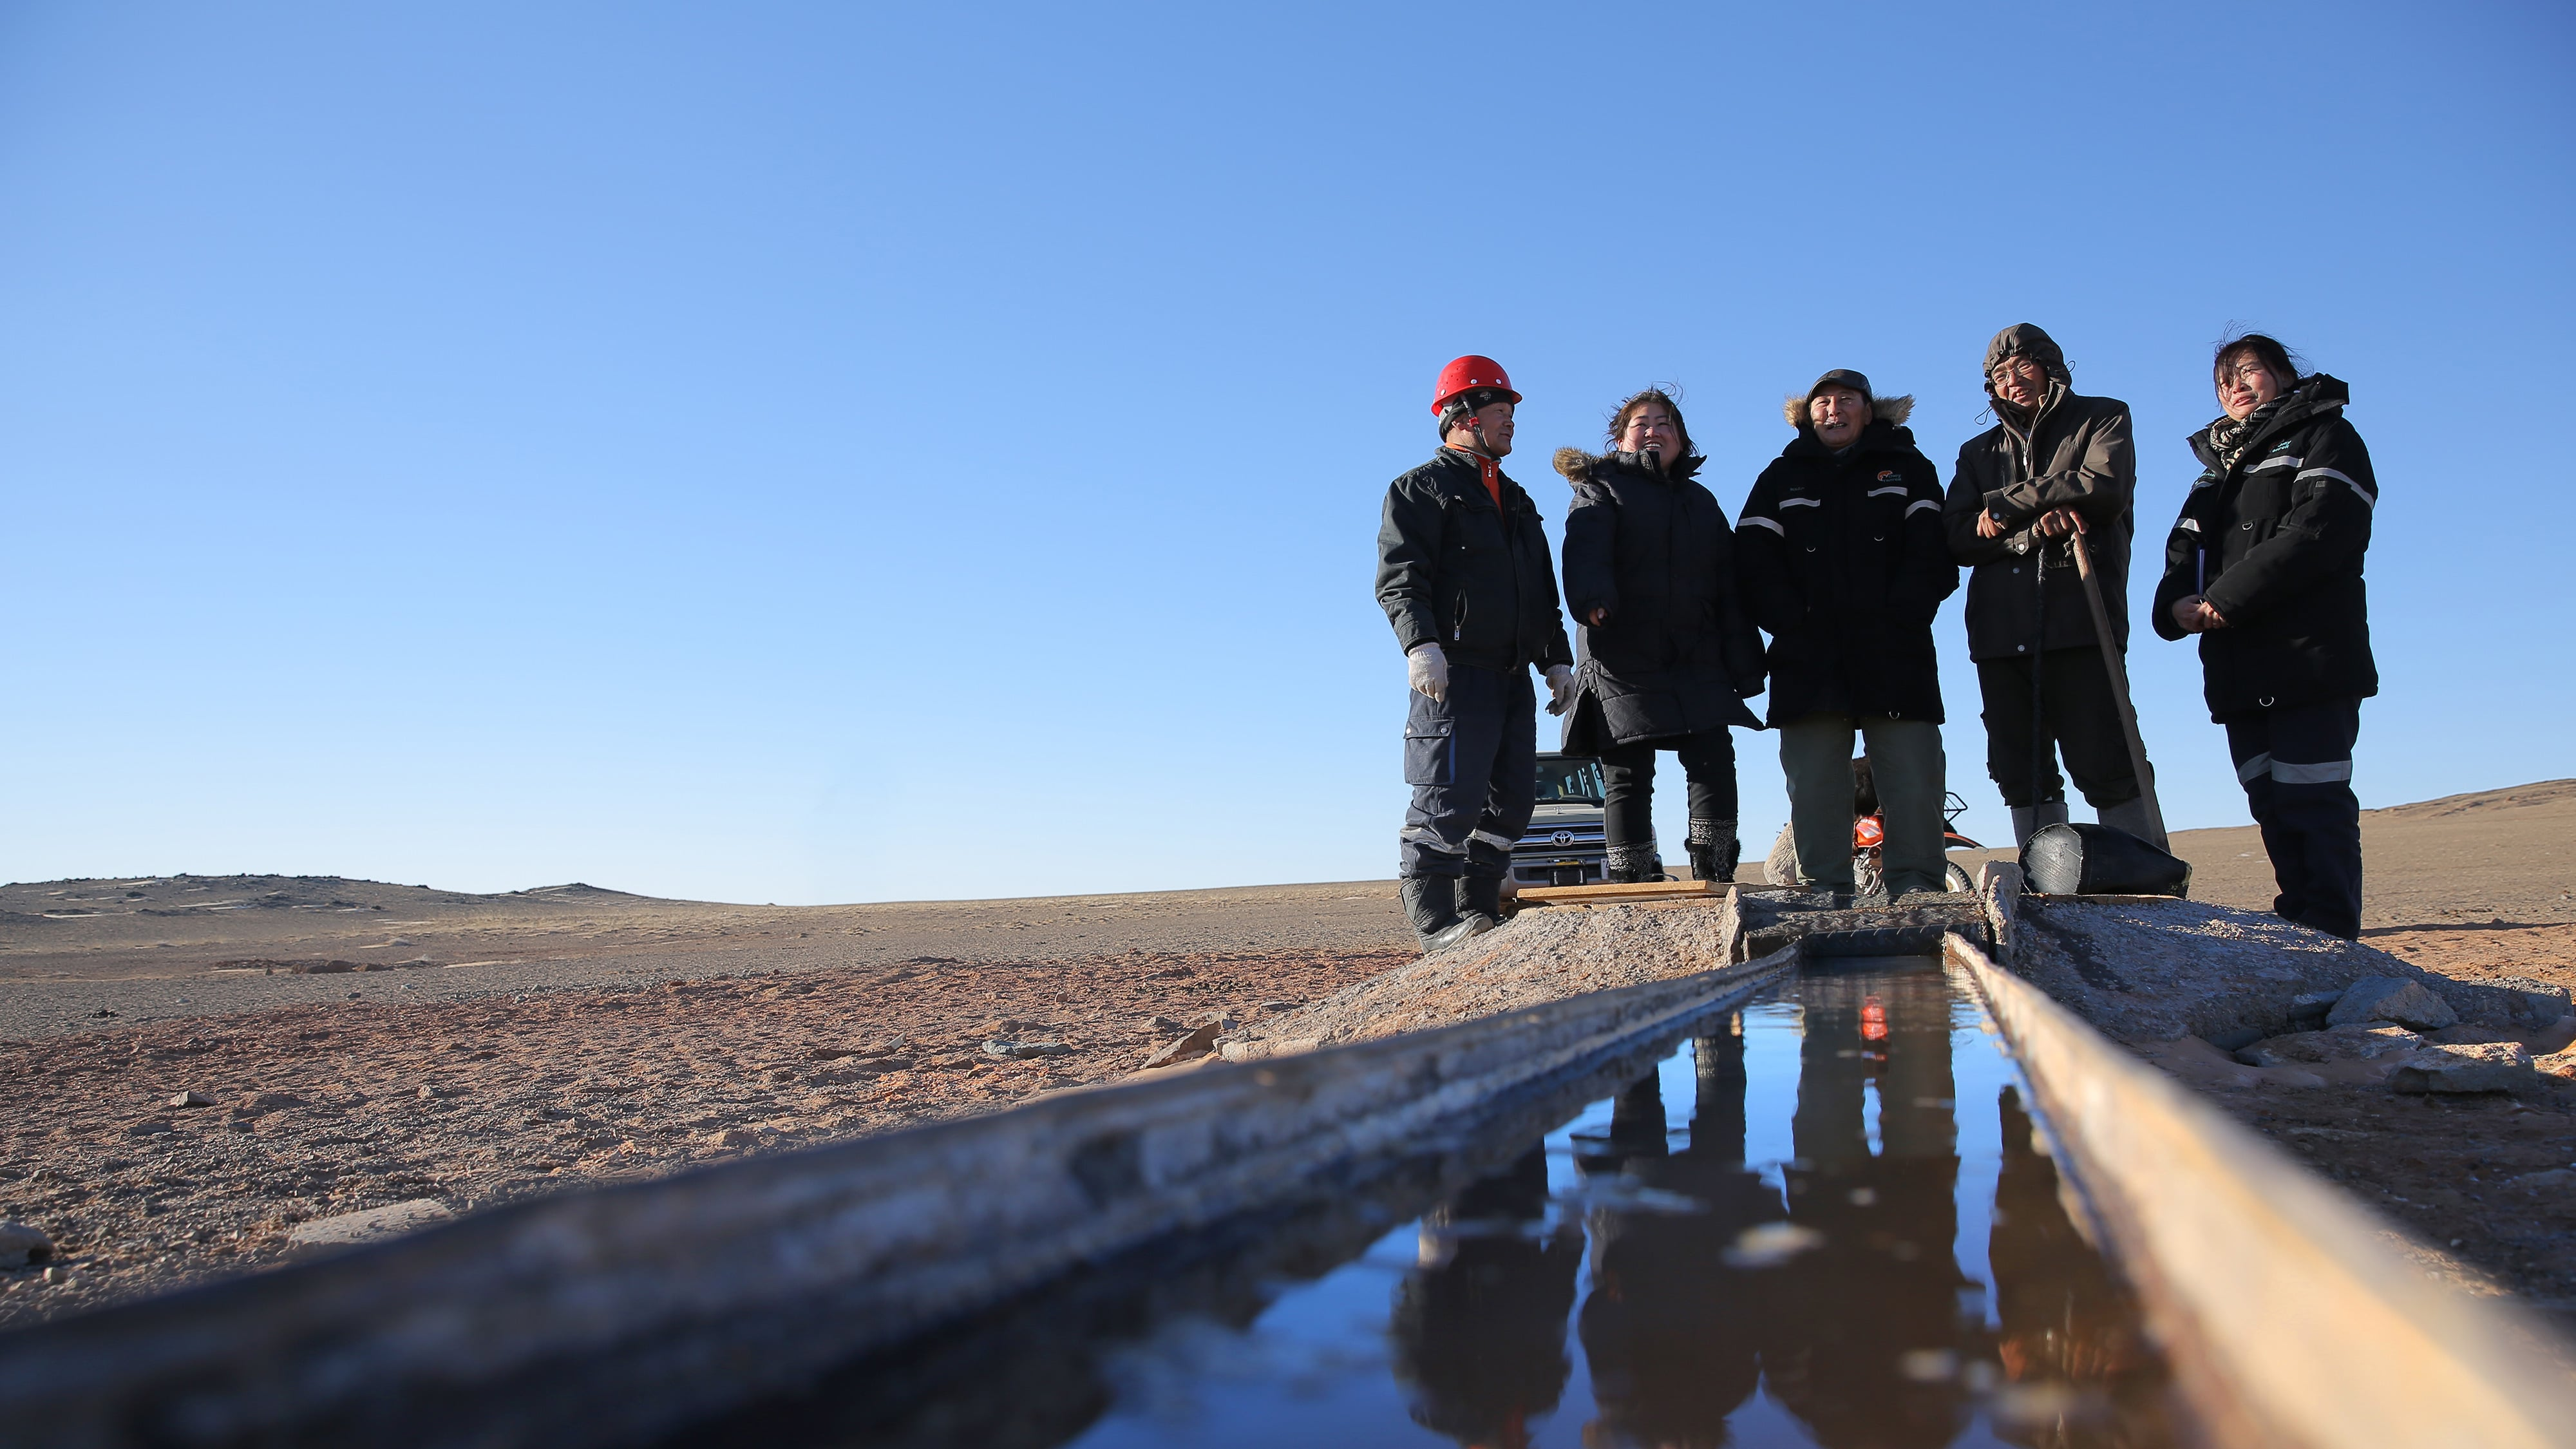 Water resources in the southern Gobi desert